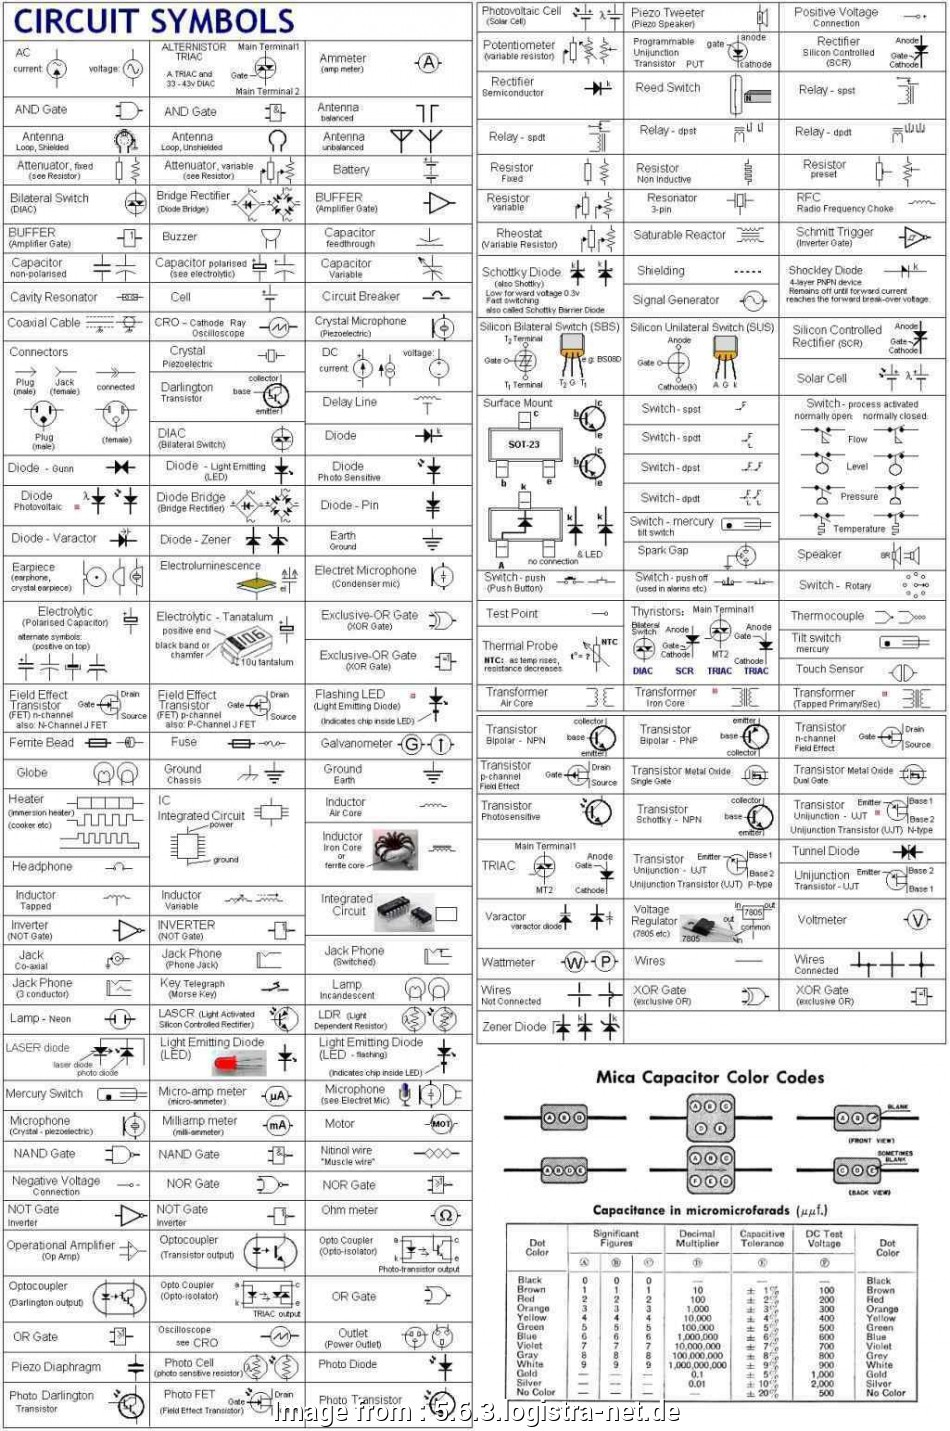 Ht Panel Wiring Diagram Ht Panel Wiring Inside Wiring For A 33kv Ht Panel In A Electrical Panel Board Wiring Diagram Pdf Elegant Ht Panel Installed 33 11kv Inside An Electrical Sharp